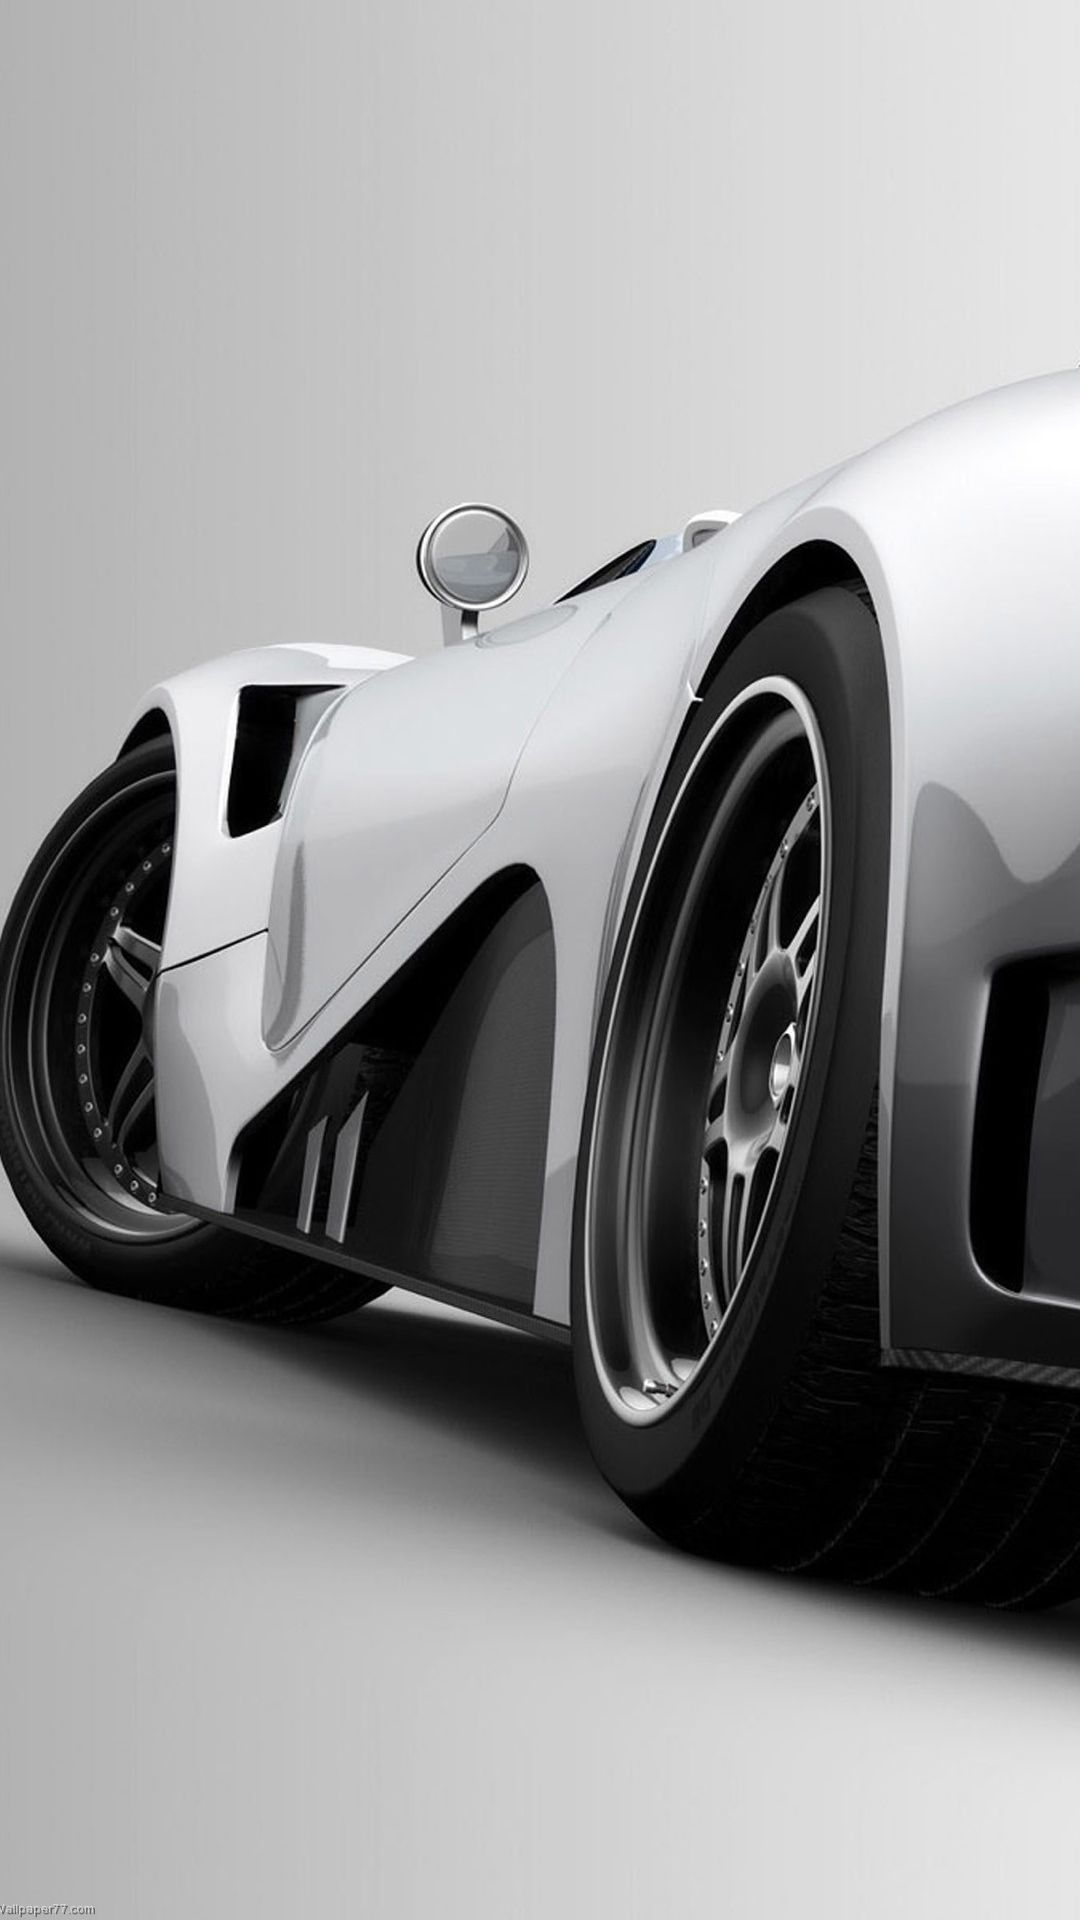 Black And White Super Sport Car IPhone 6 Plus HD Wallpaper   Http://